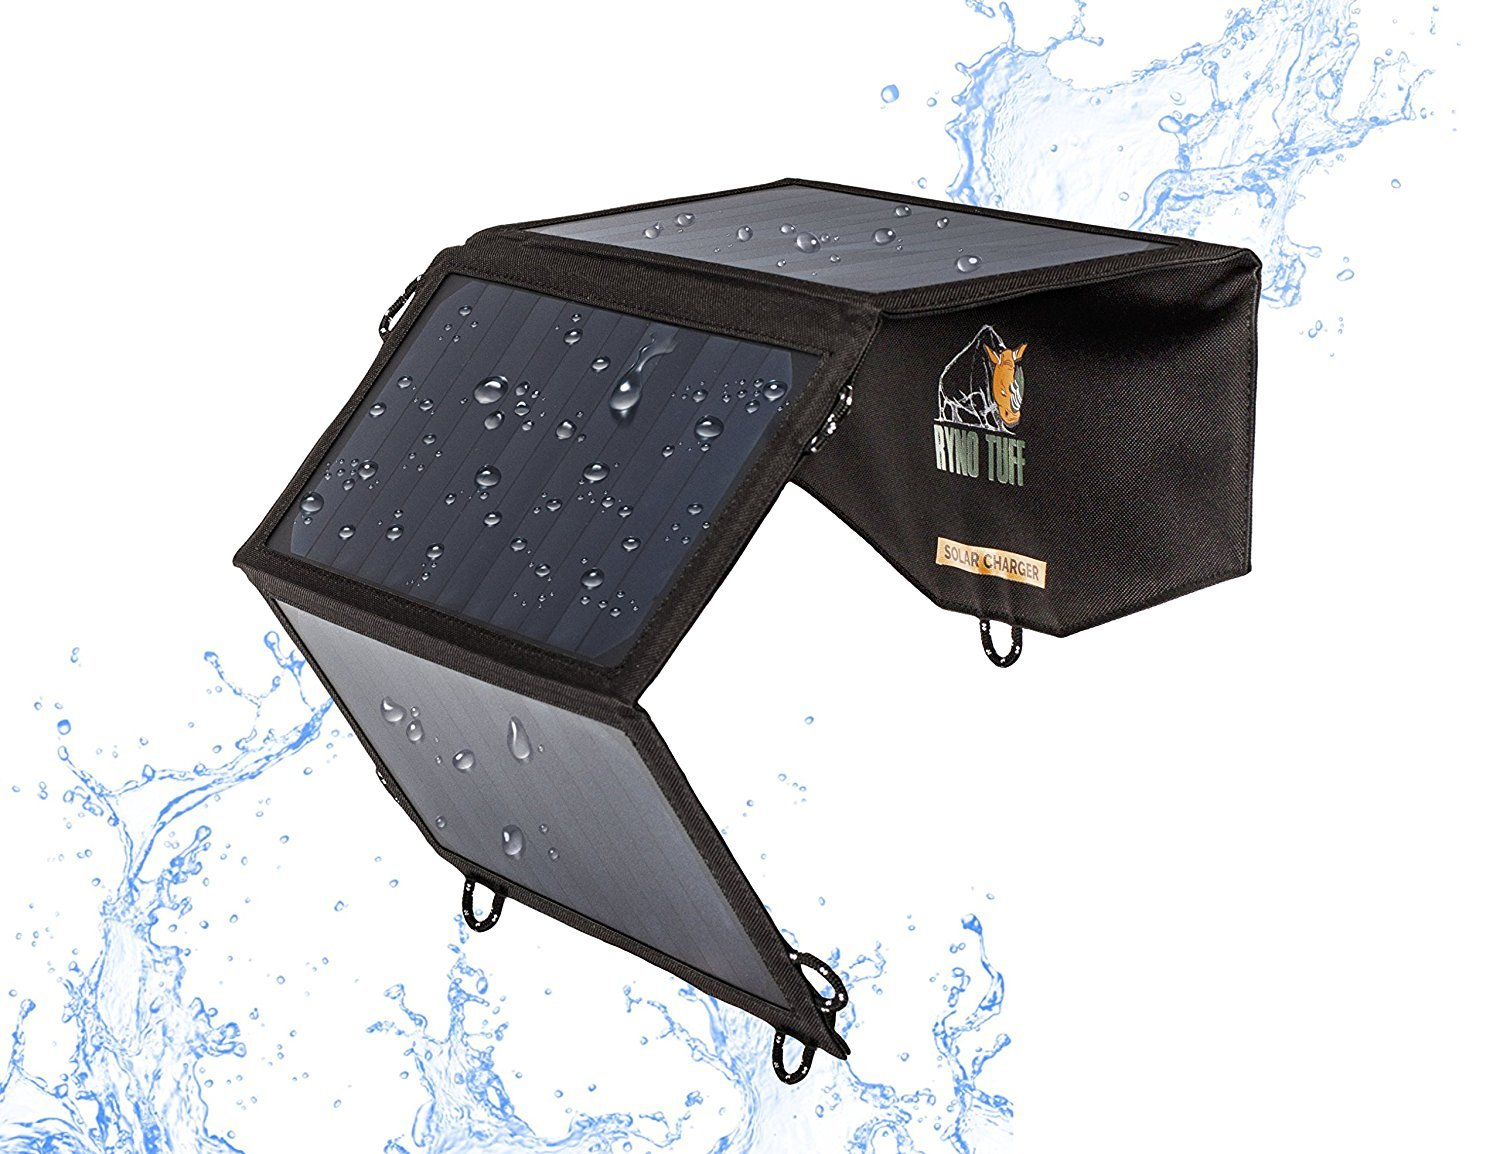 Gifts for Geeks - Foldable Solar Charger